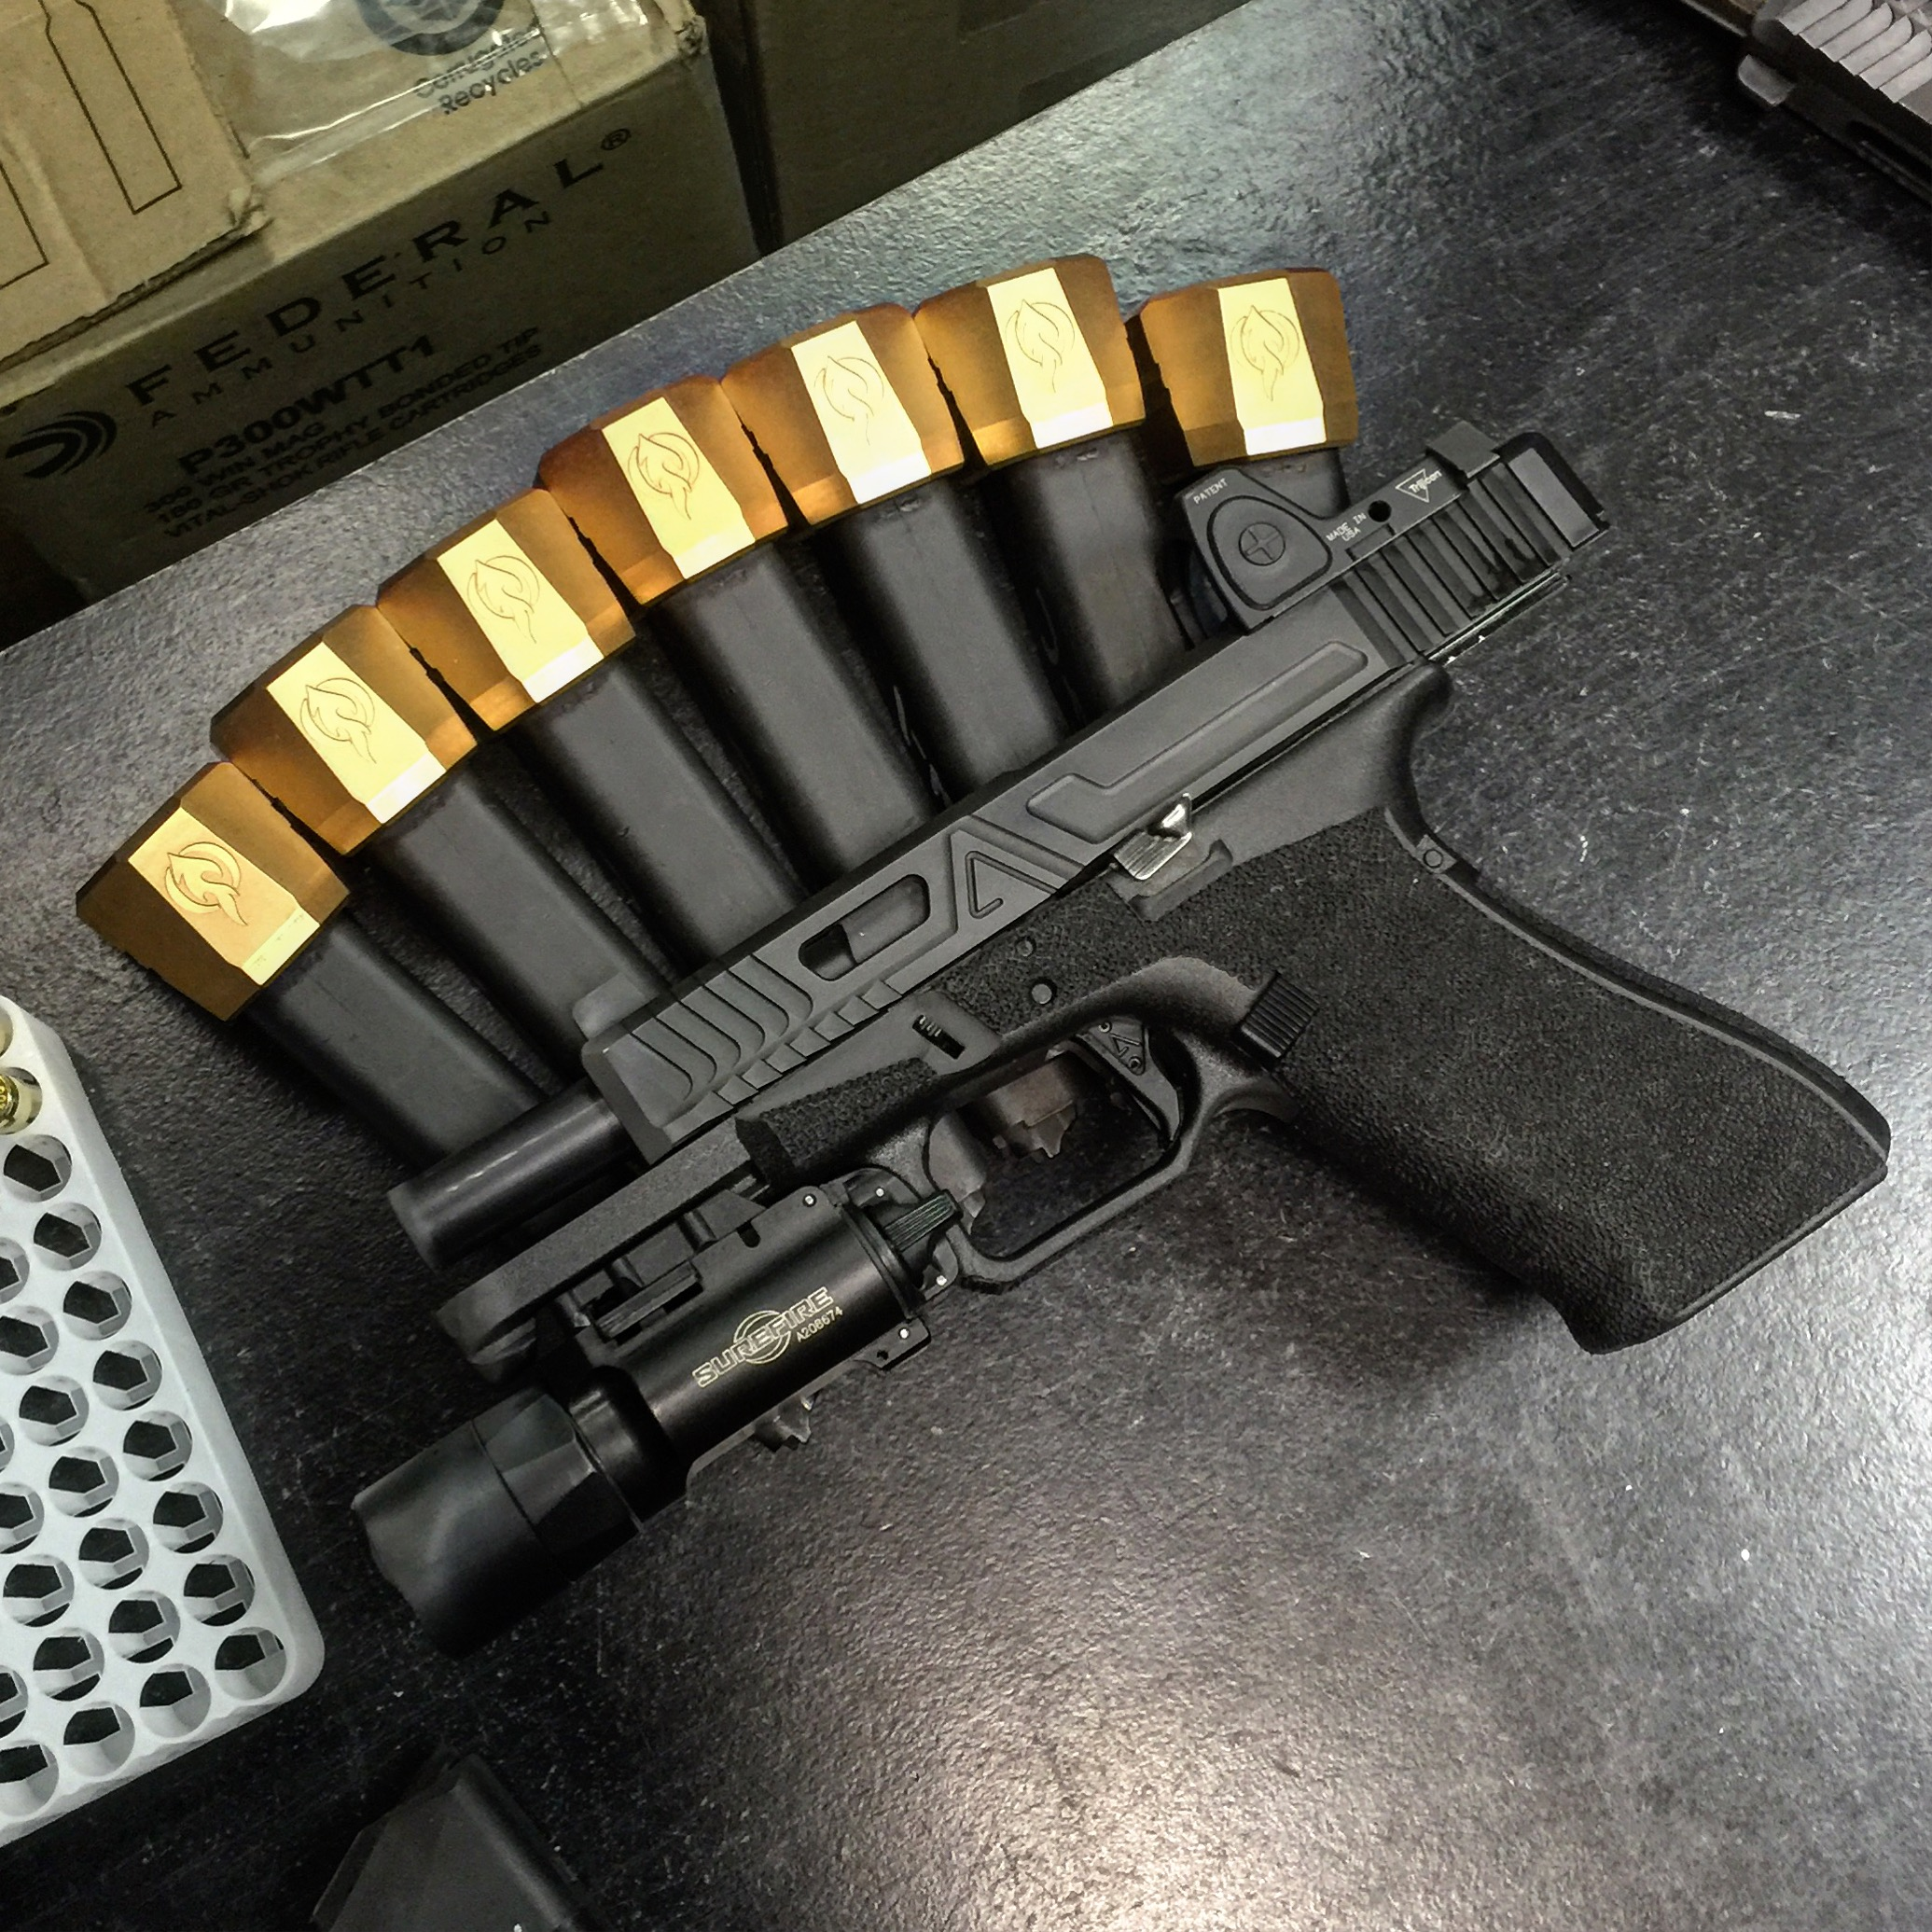 ALL ABOUT THAT BASE   Falkor defense makes some of the sexiest base pads for Glock and M&P magazines. Was a blast going ham on these in vegas.